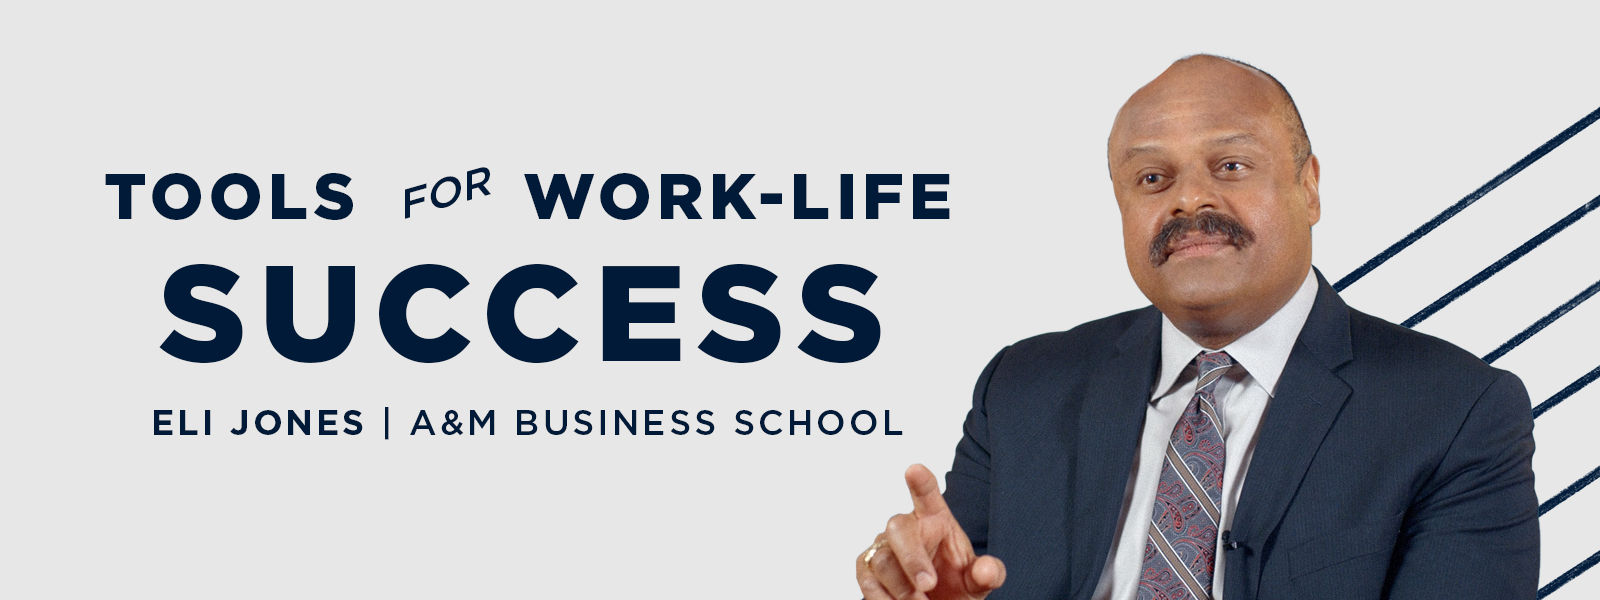 Tools for Work-Life Success